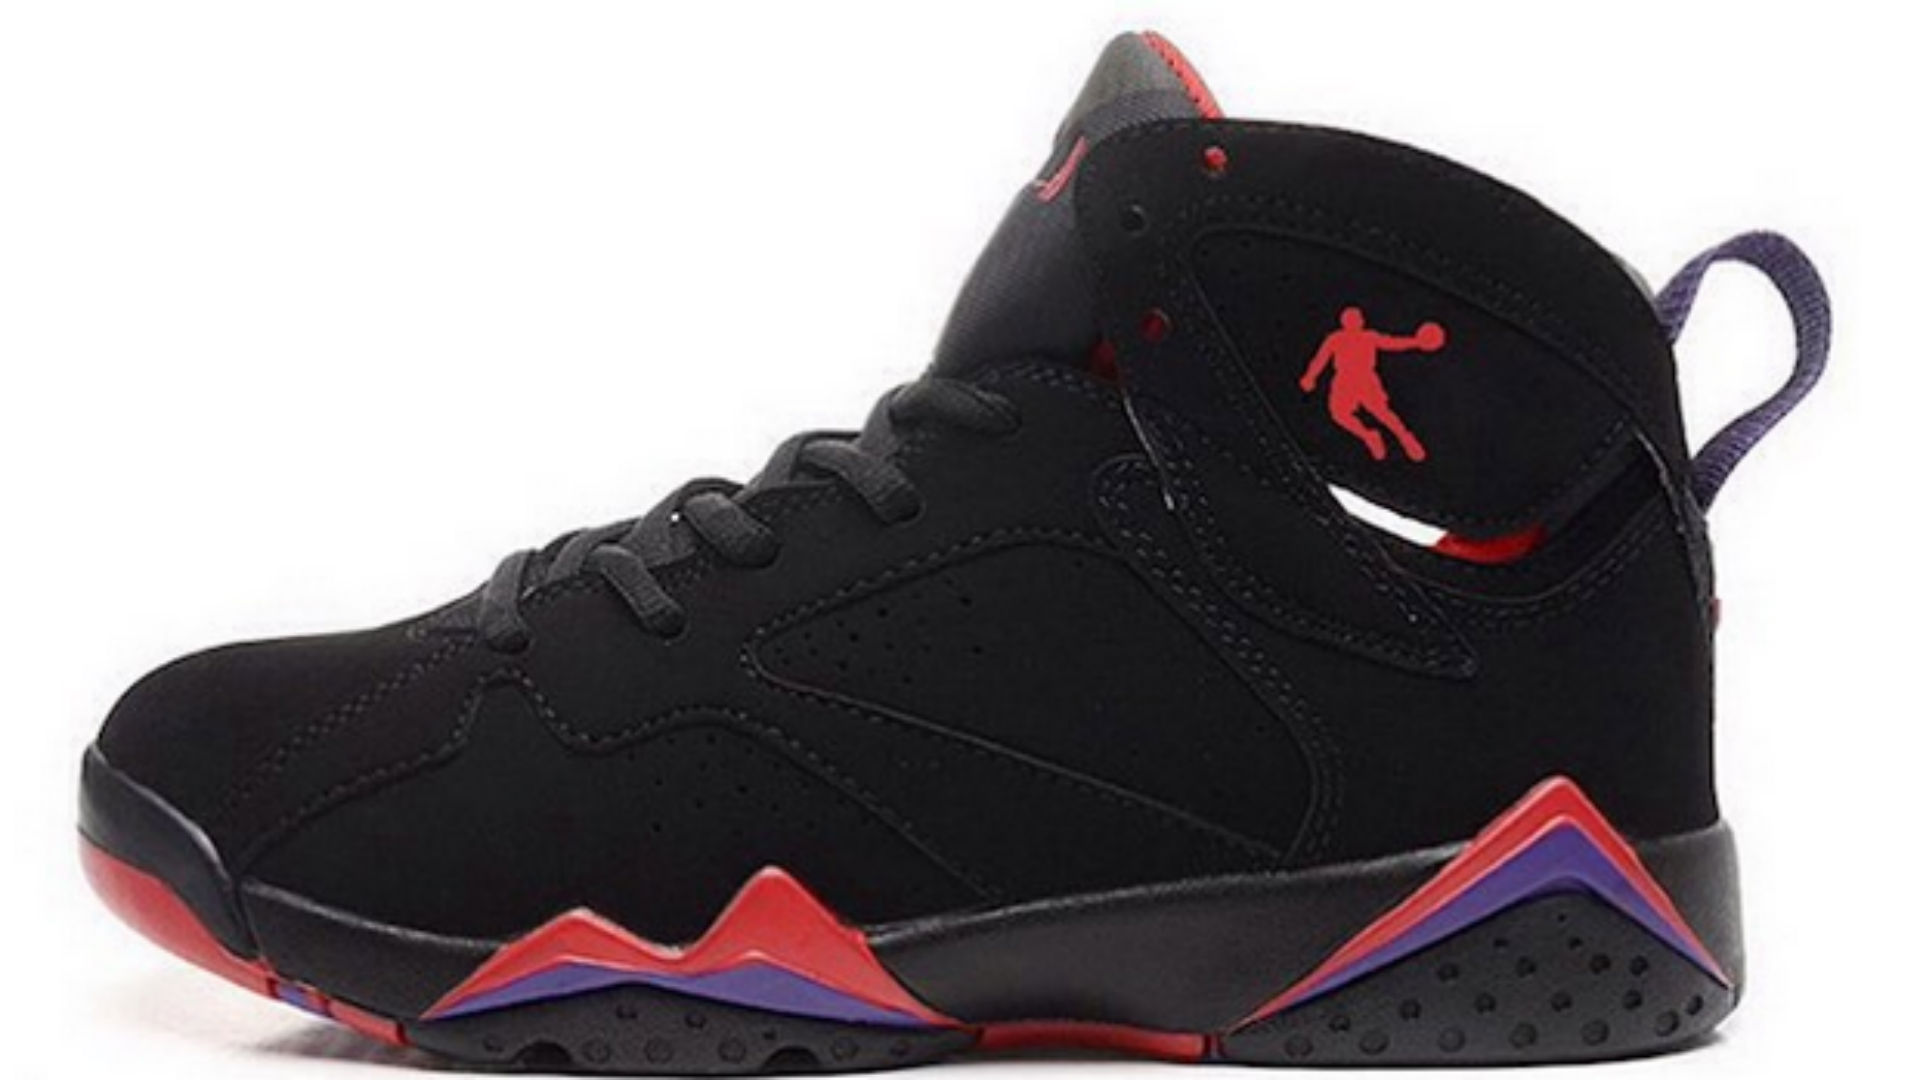 on sale 5dd2c d1231 A Chinese company is legally selling fake Air Jordans   Sporting News